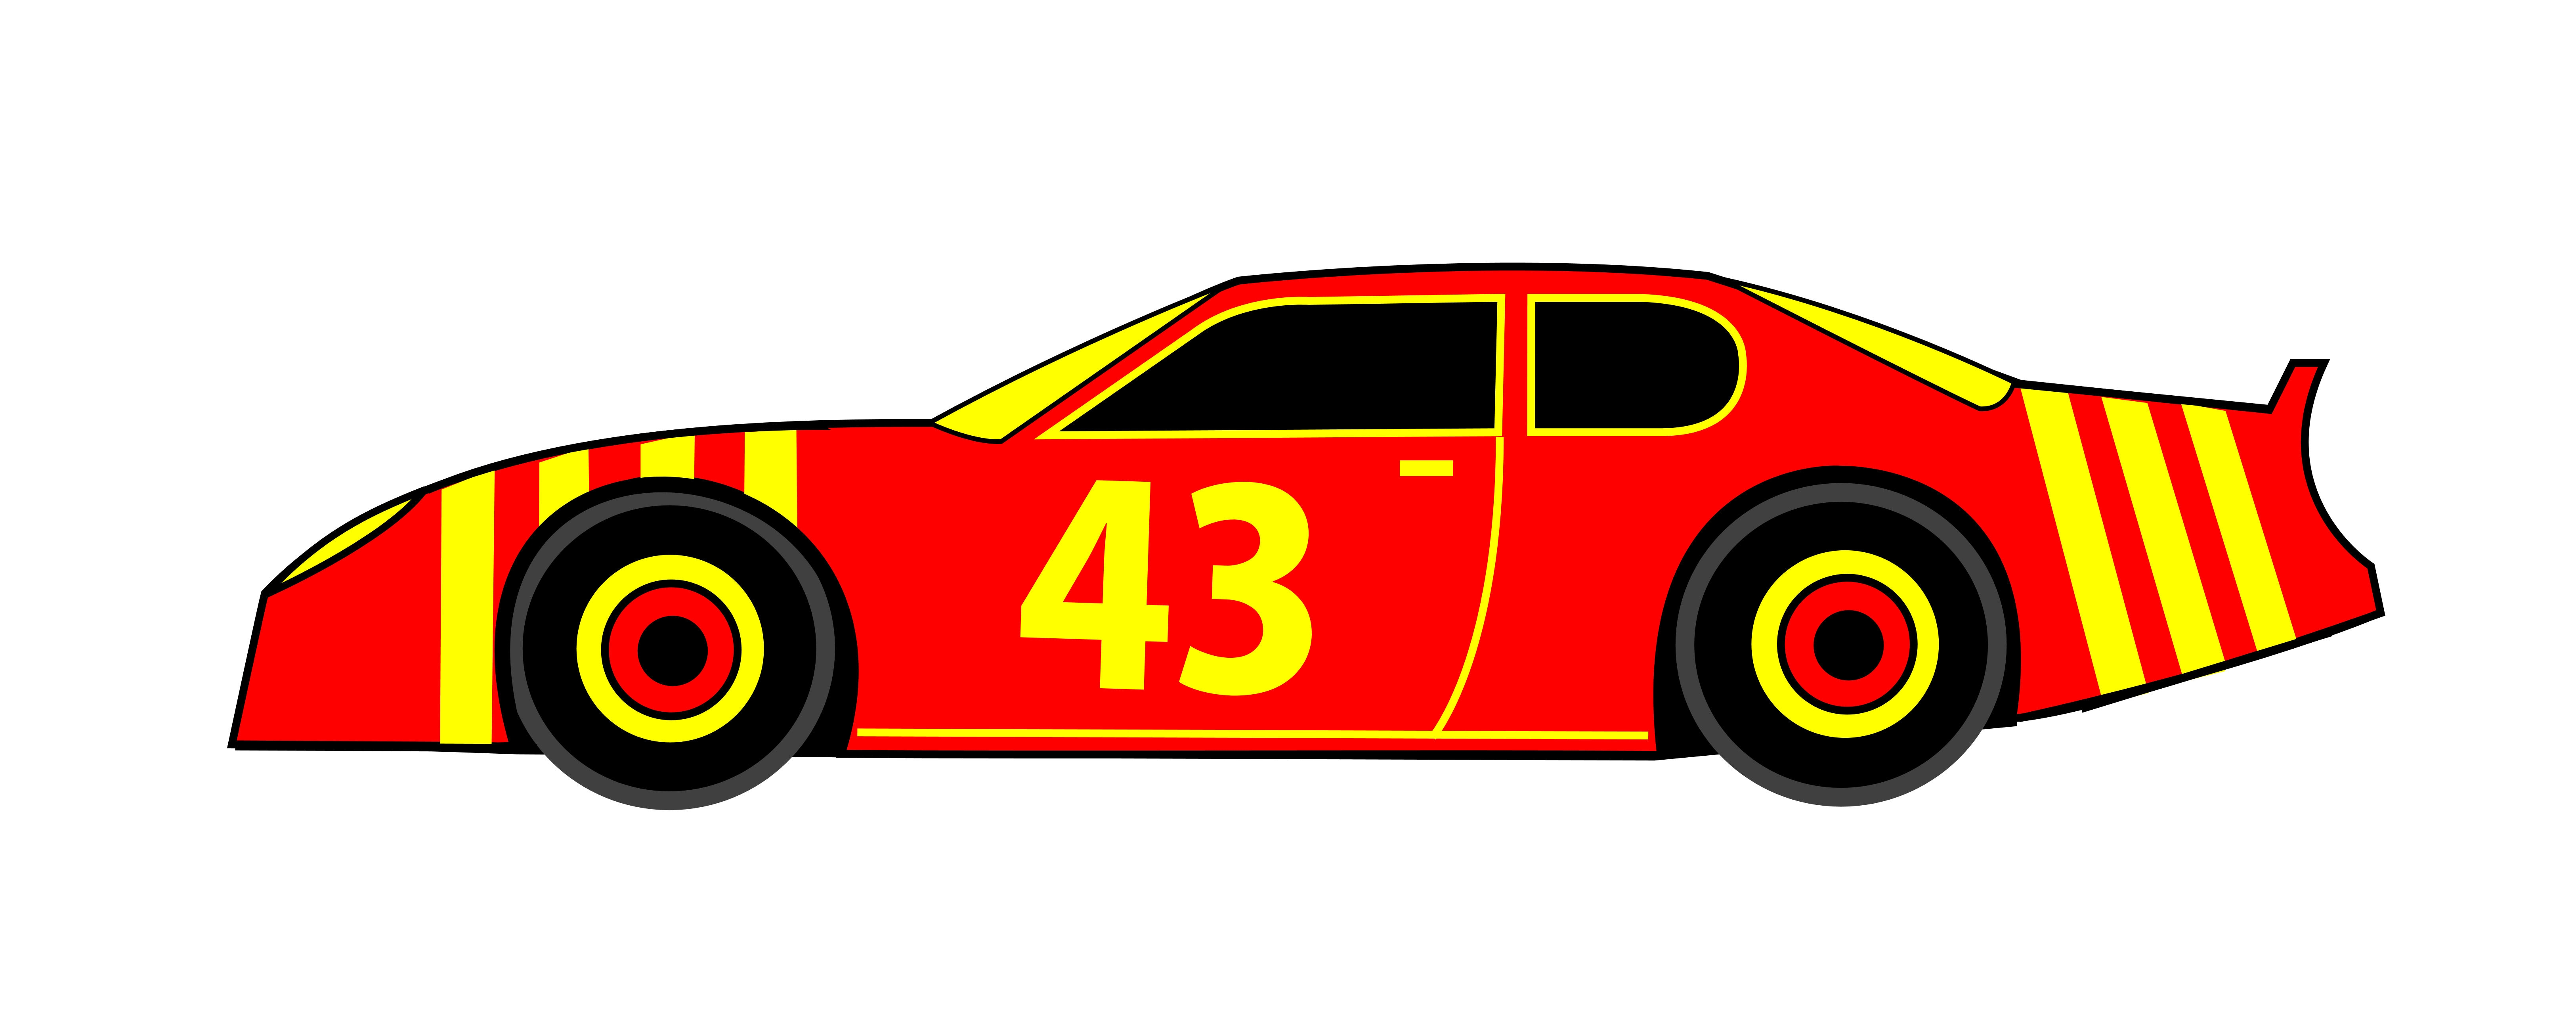 6500x2555 Race Car Images Clip Art Race Car Clipart For Kids Free Images 7